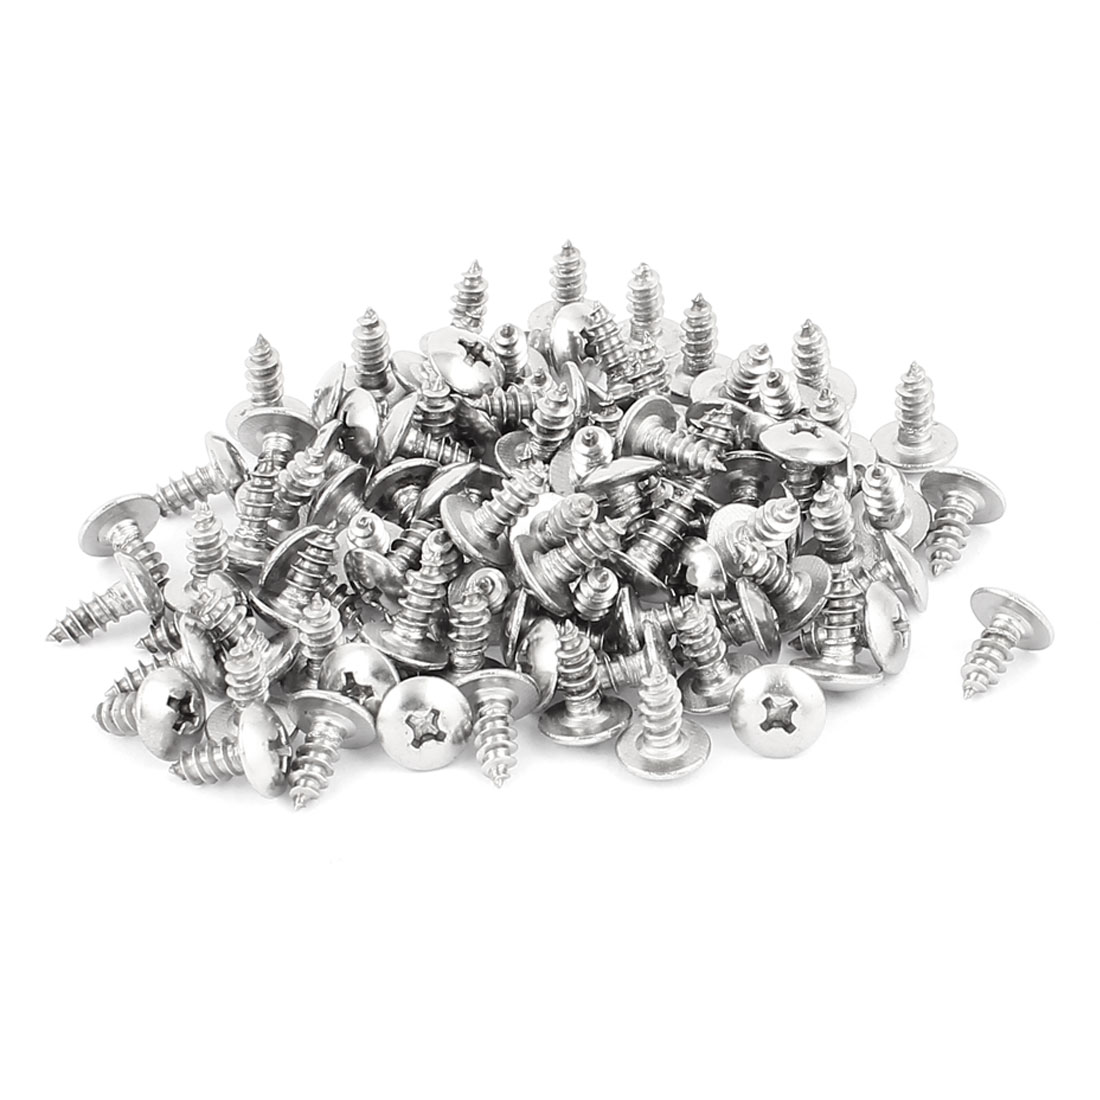 3.9mm x 11mm Phillips Cross Drive Truss Head Self Tapping Screw Fasteners Silver Tone 100 Pcs